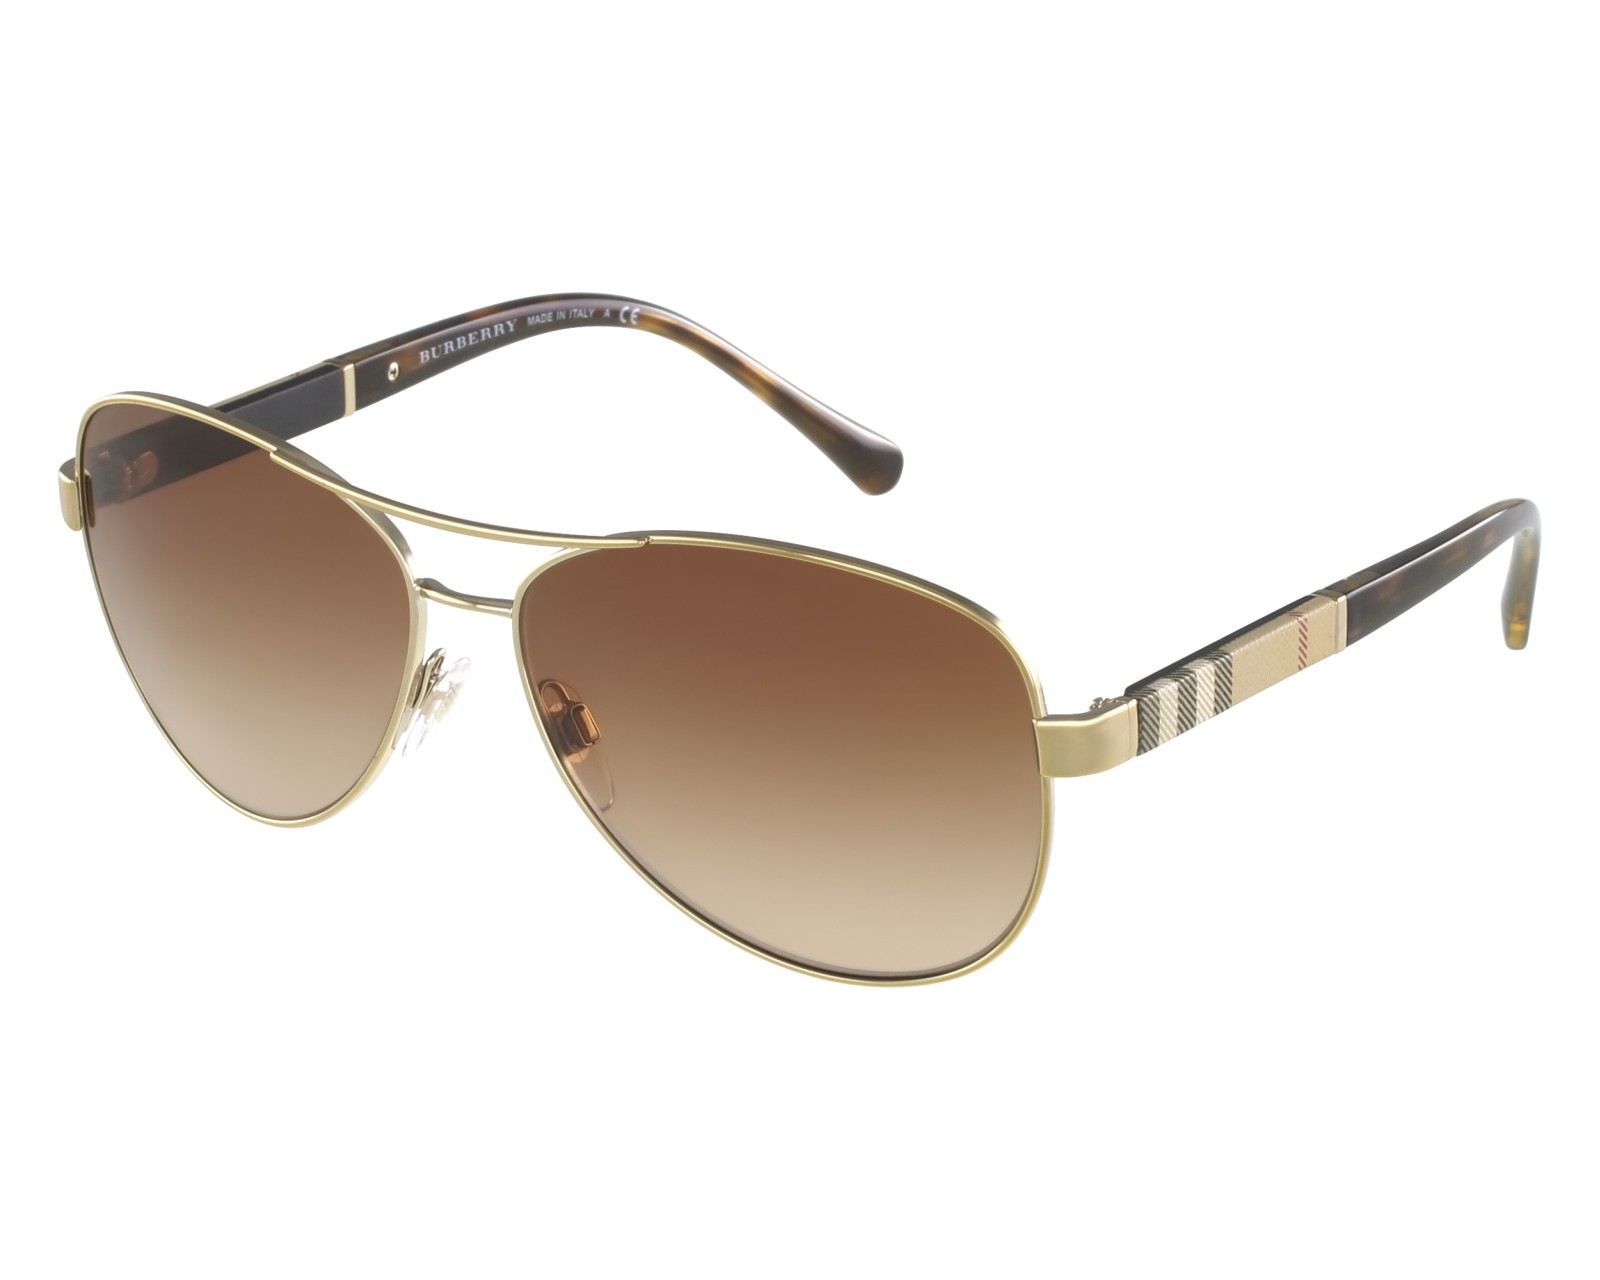 0a91cc6c5aeea8 Sunglasses Burberry BE-3080 1145 13 59-14 Gold Beige front view